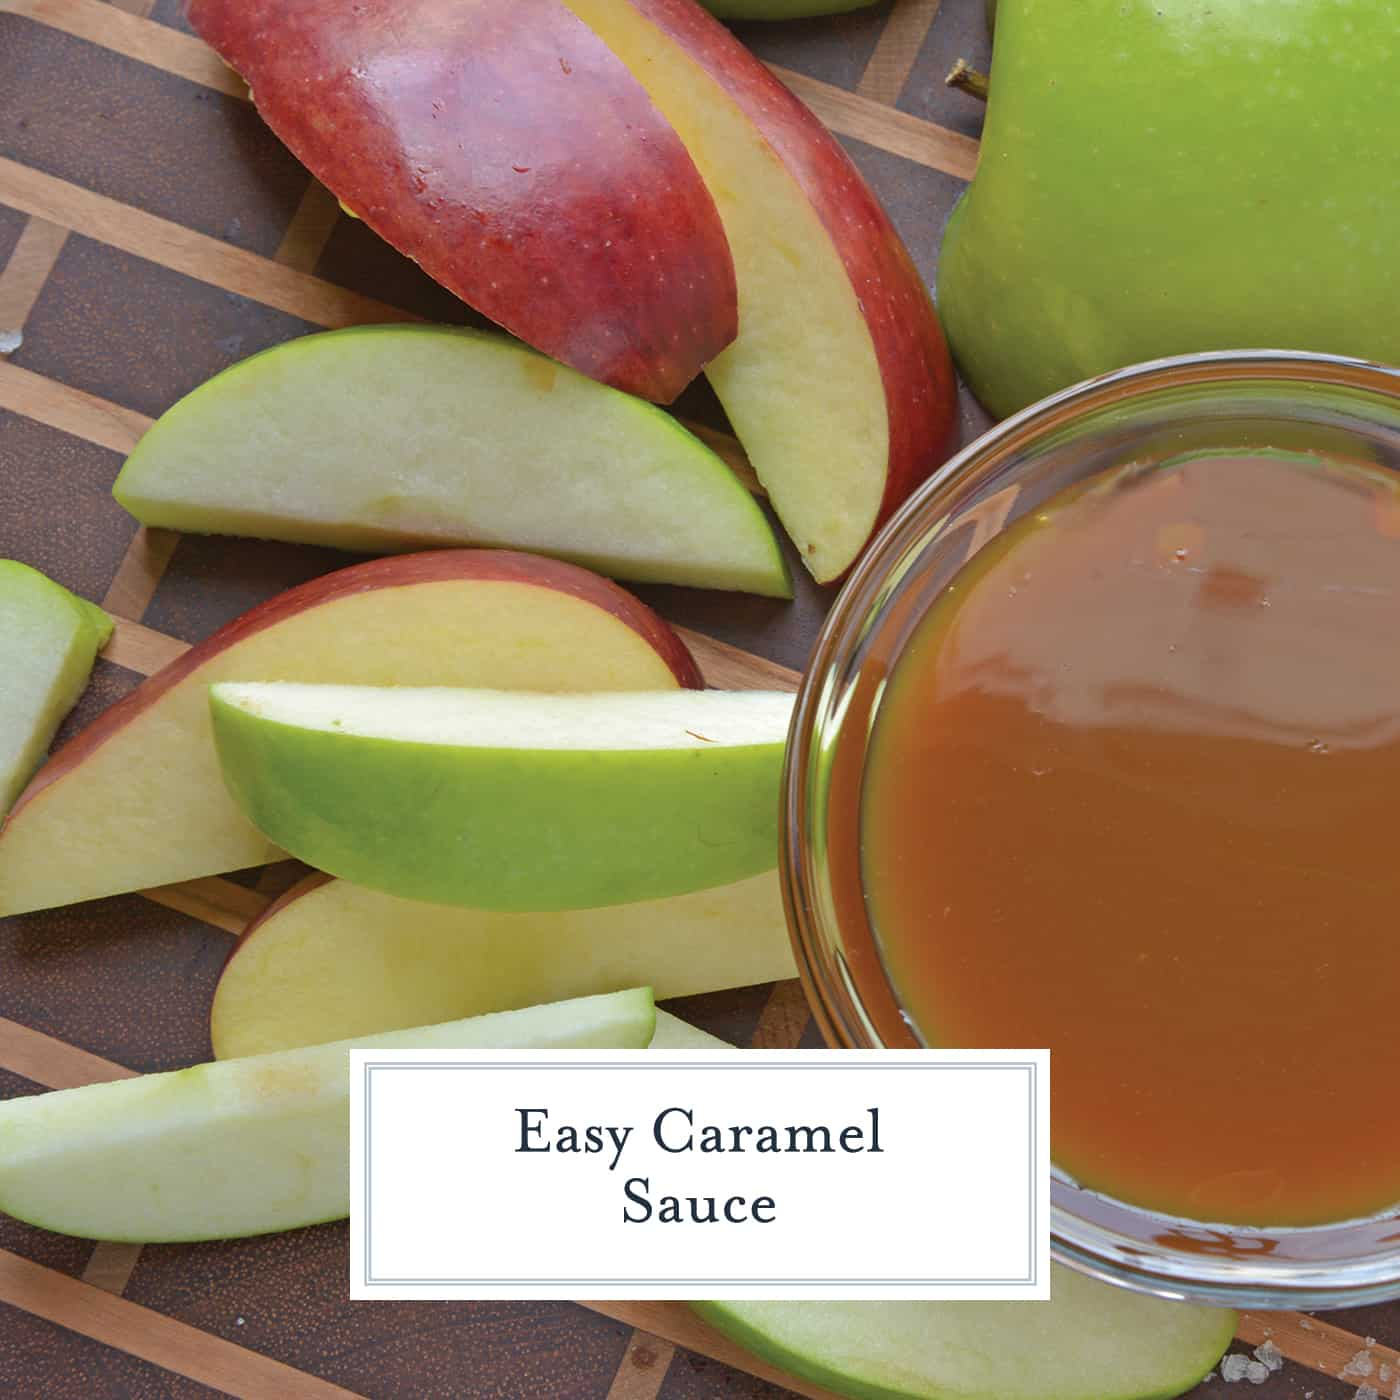 Easy Caramel Sauce comes together in just 15 minutes with only 5 ingredients. Use it in any recipe that calls for caramel! #howtomakecaramel #caramelsauce www.savoryexperiments.com